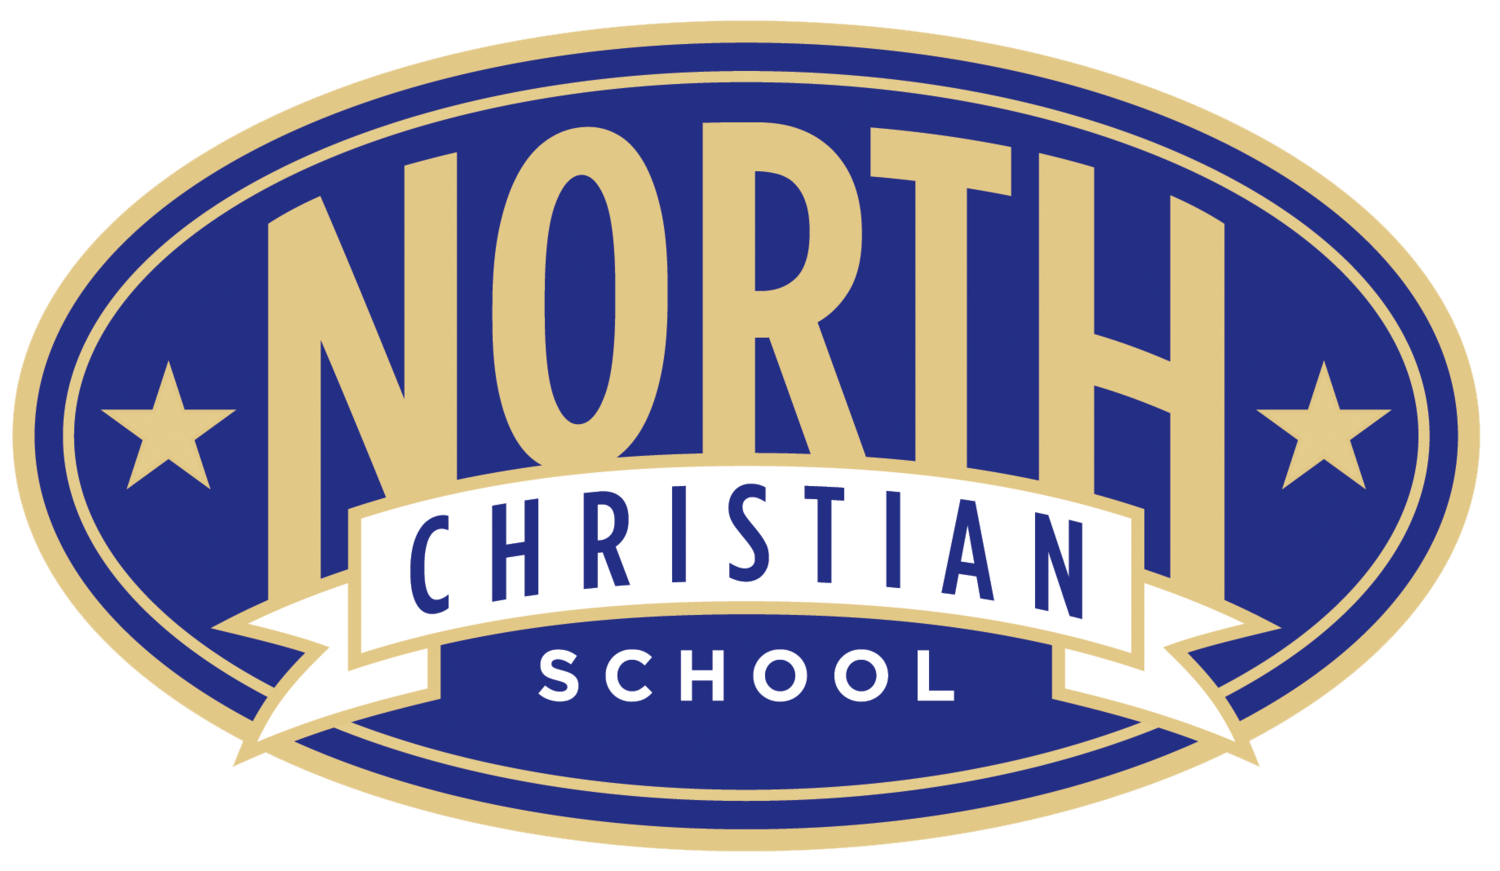 North Christian School